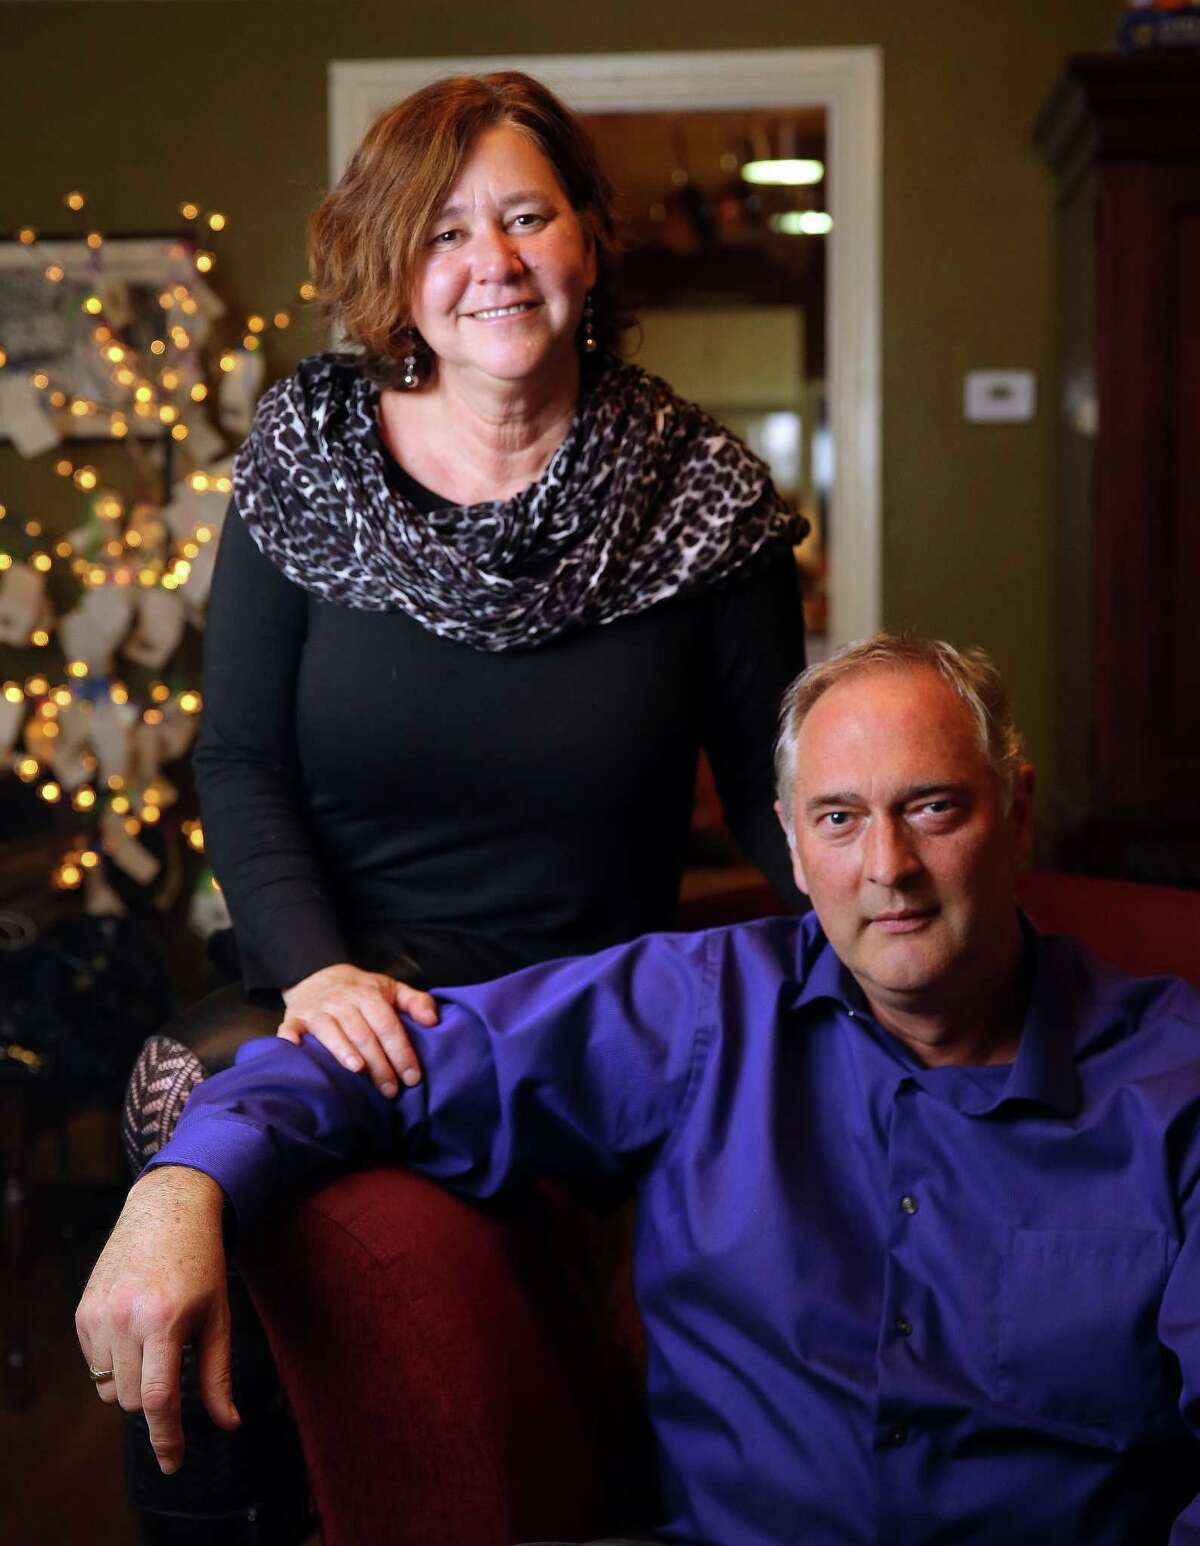 Todd and Laura Crooks lost their 21-year-old son Chad to suicide one year after he was diagnosed with schizophrenia. Since then, they have become advocates for mental health care in Washington state.